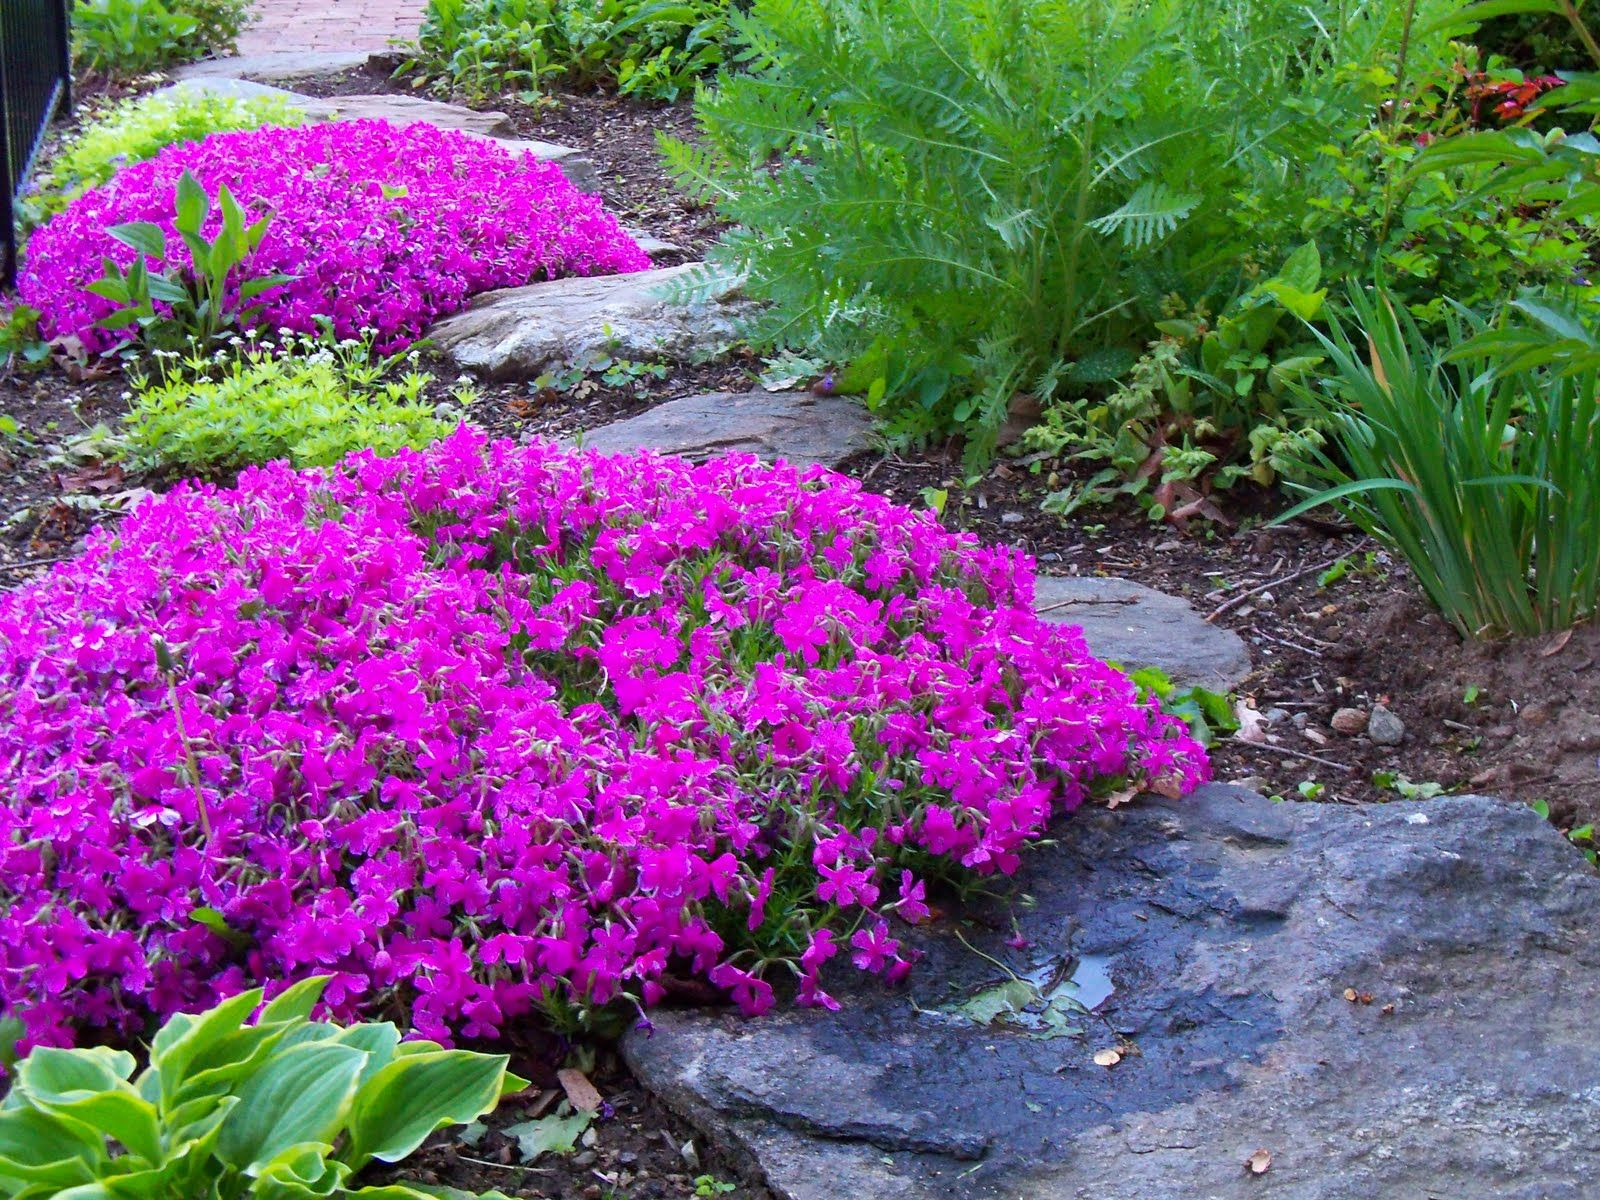 Creeping phlox ground cover...momma used to grow this to